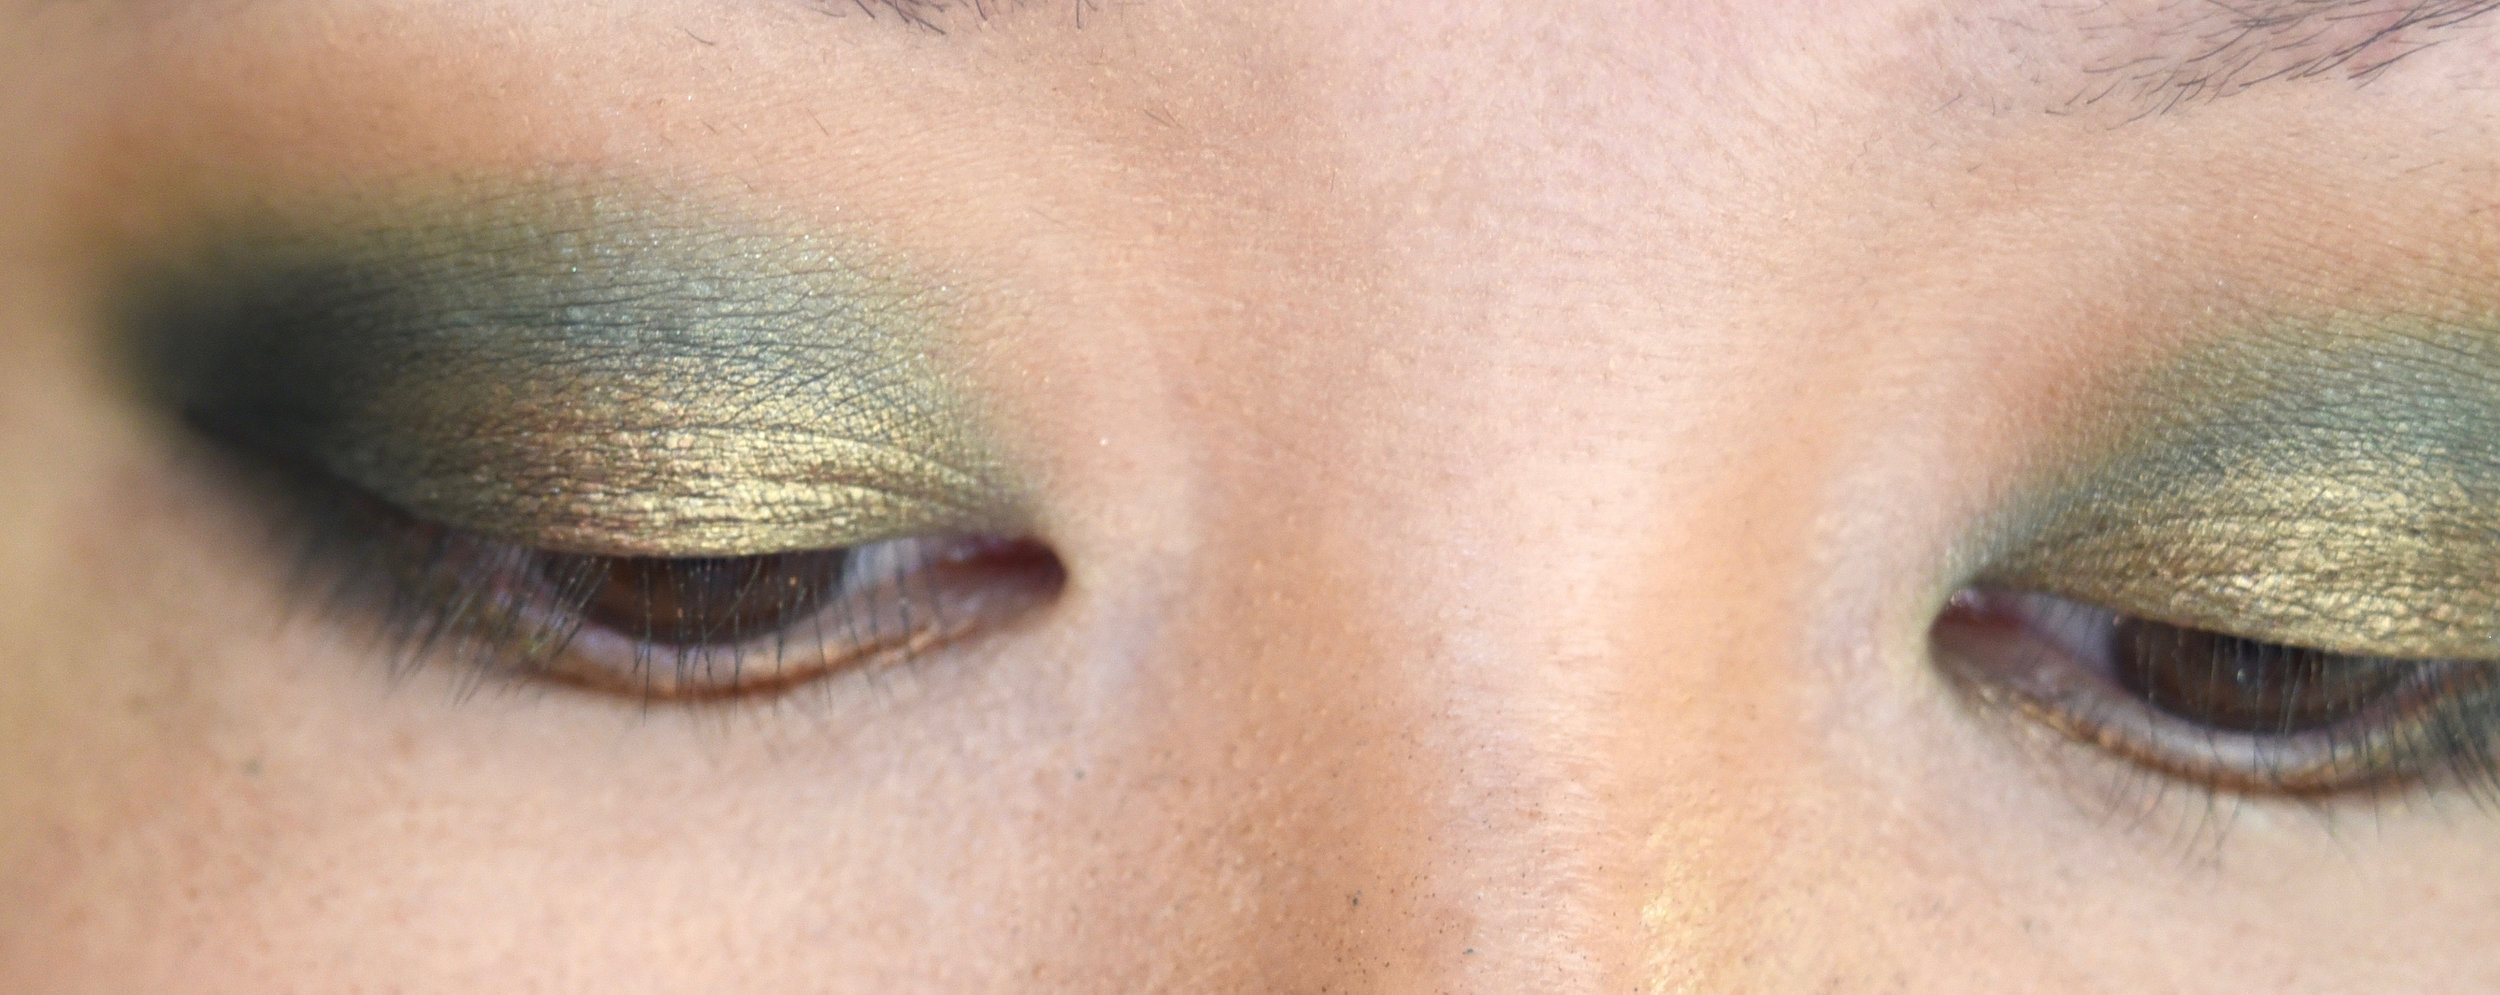 Sprayed some fix+ and reapplied gold shimmer to get more intensity